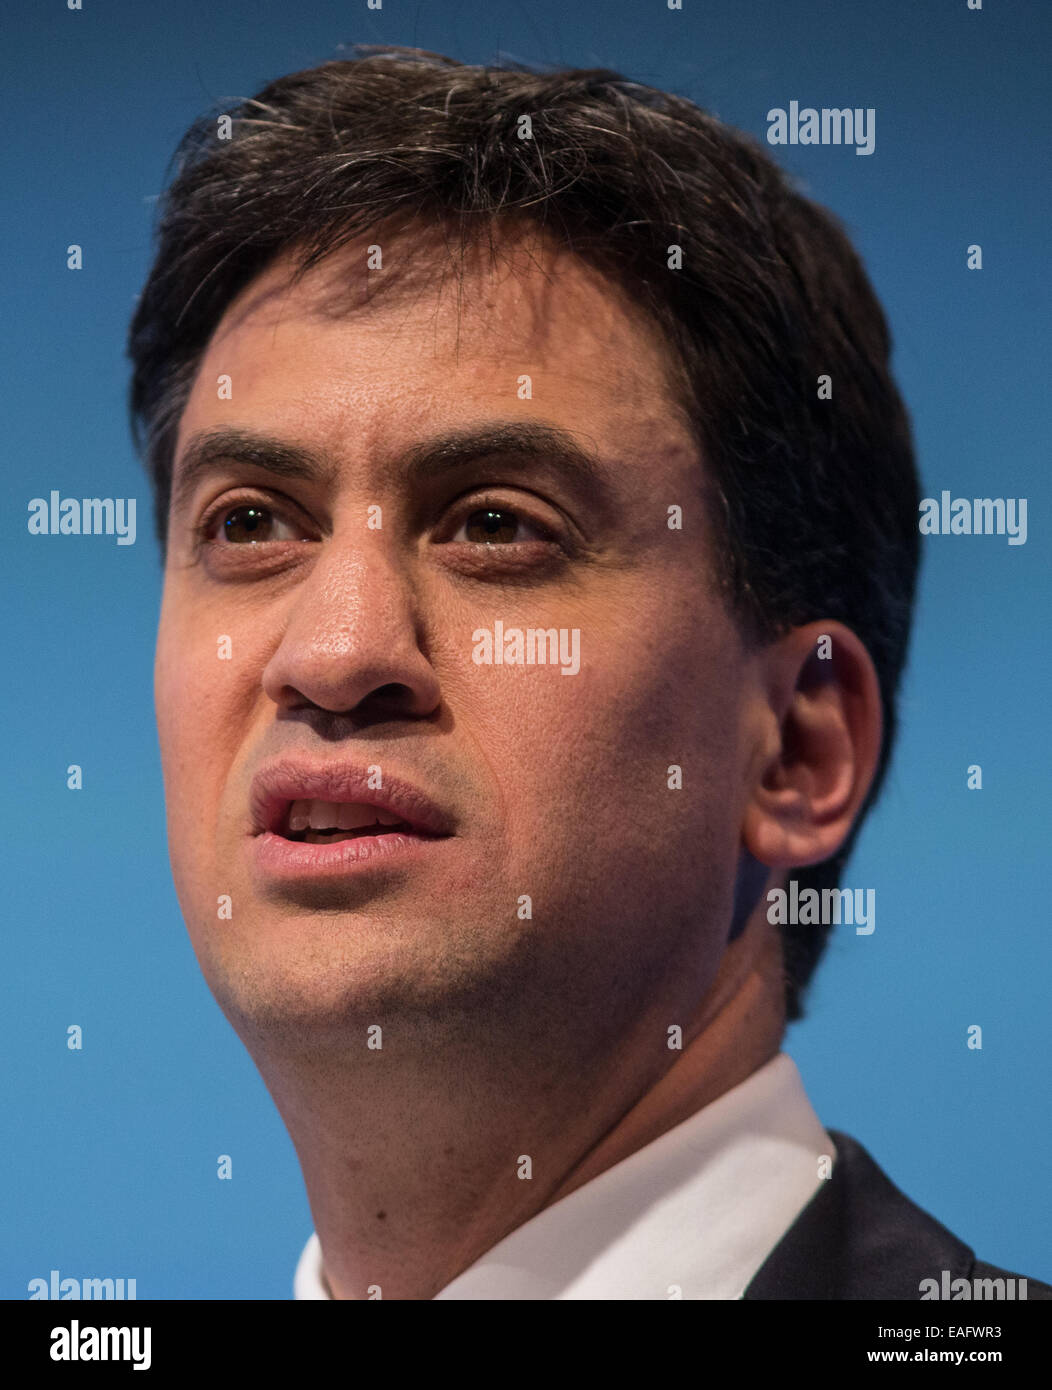 Ed Miliband,leader of the opposition,speaking at the Annual CBI conference at the Grosvenor Hotel,London - Stock Image